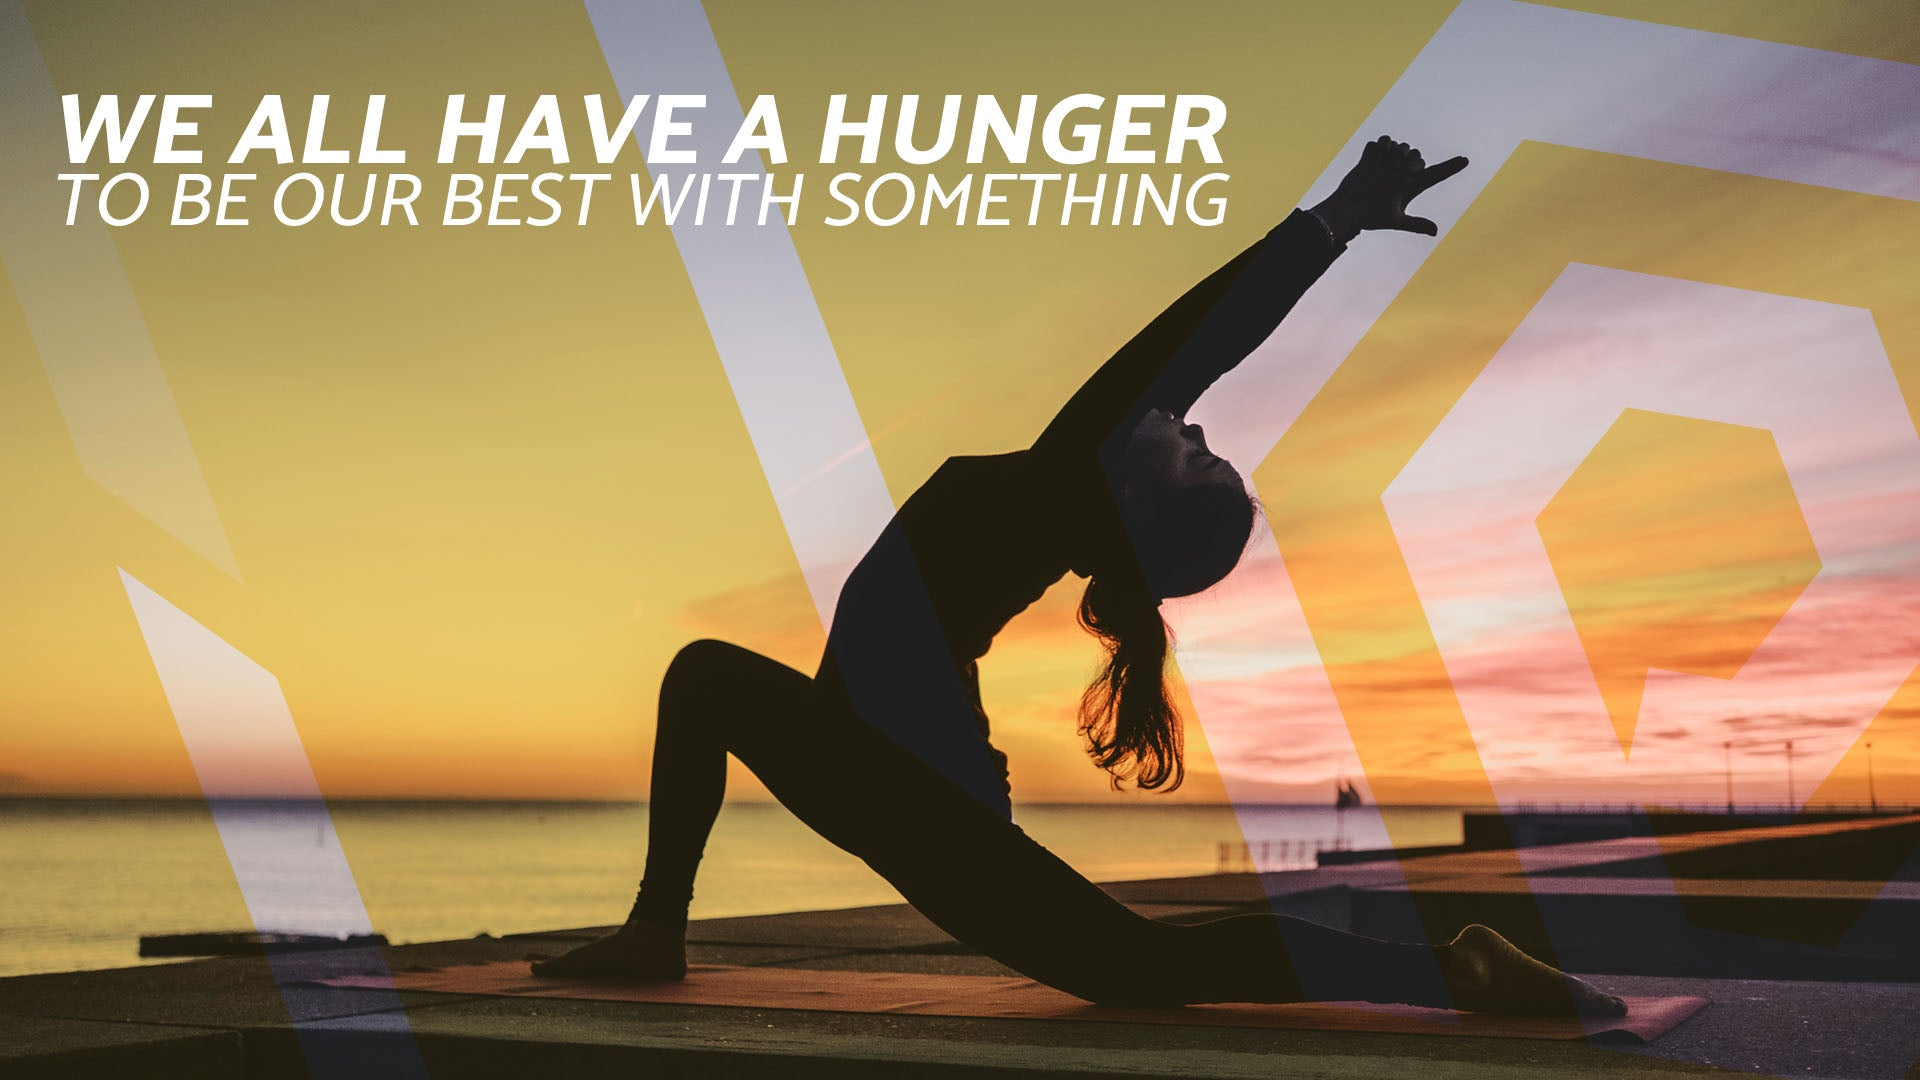 We all have a hunger to be our best with something